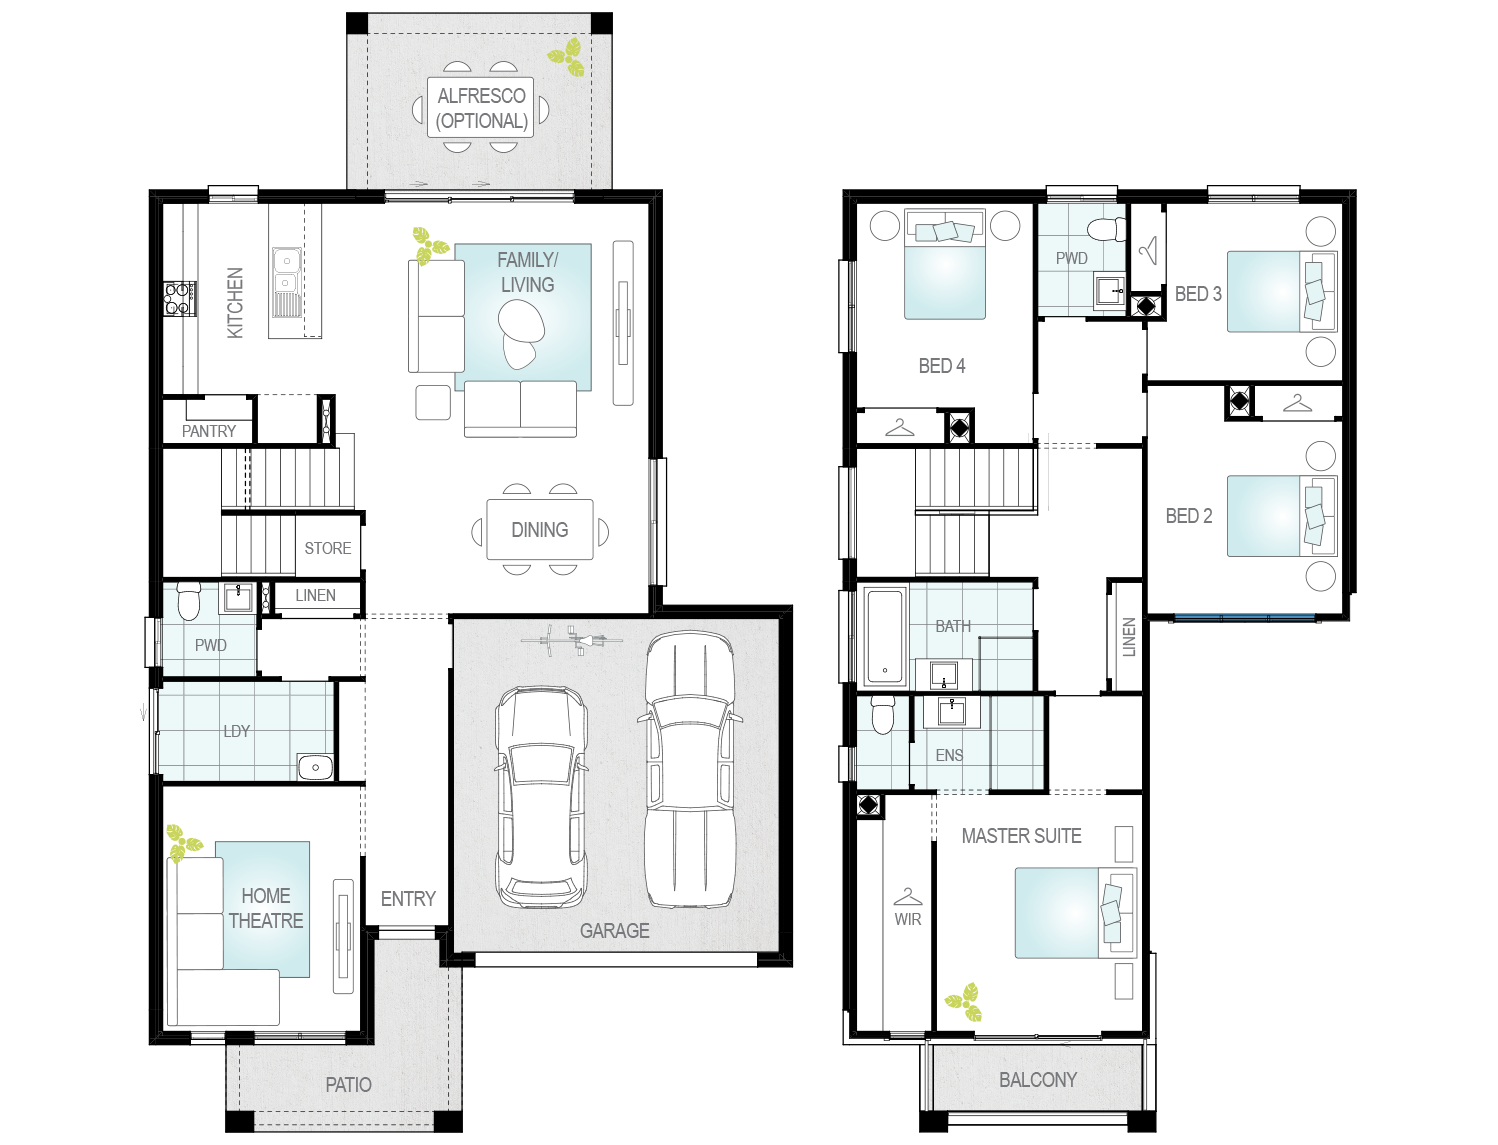 Altessa one floor plan_0.png